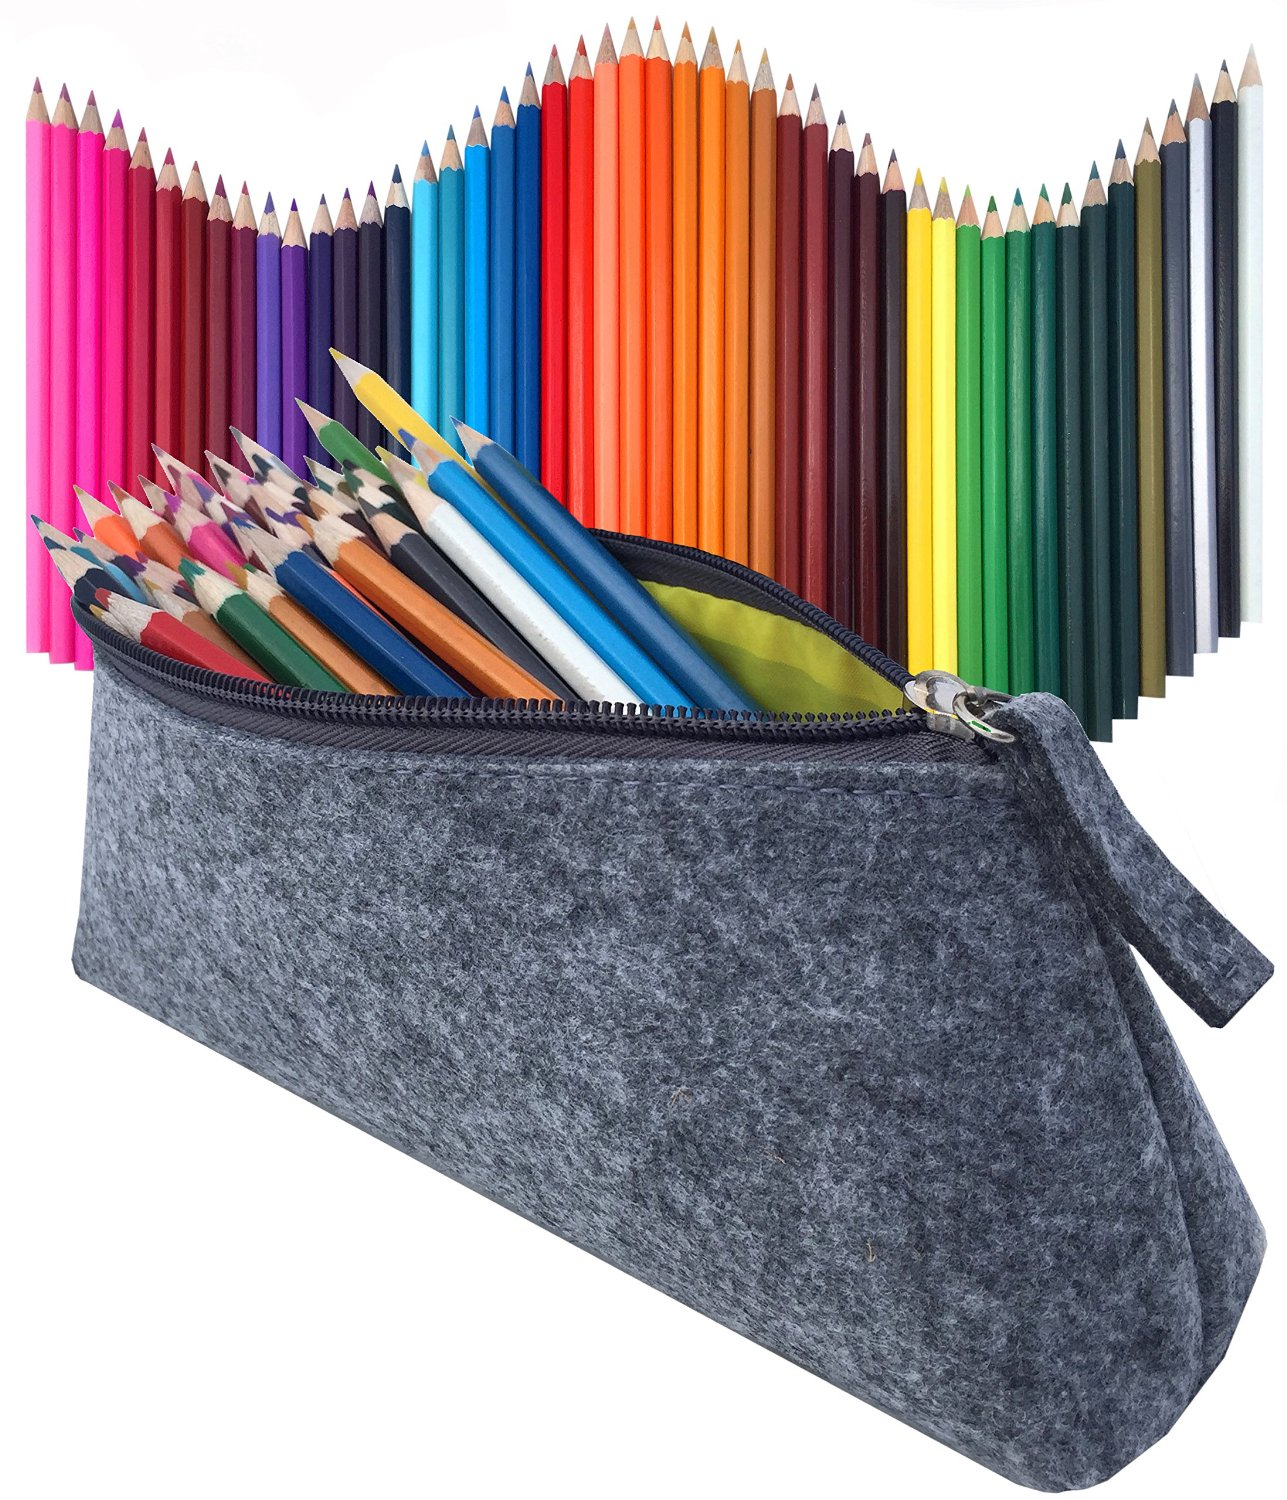 48 Colored Pencil Set & Durable Pencil Case, Non-Toxic Sketching Drawing Pencils